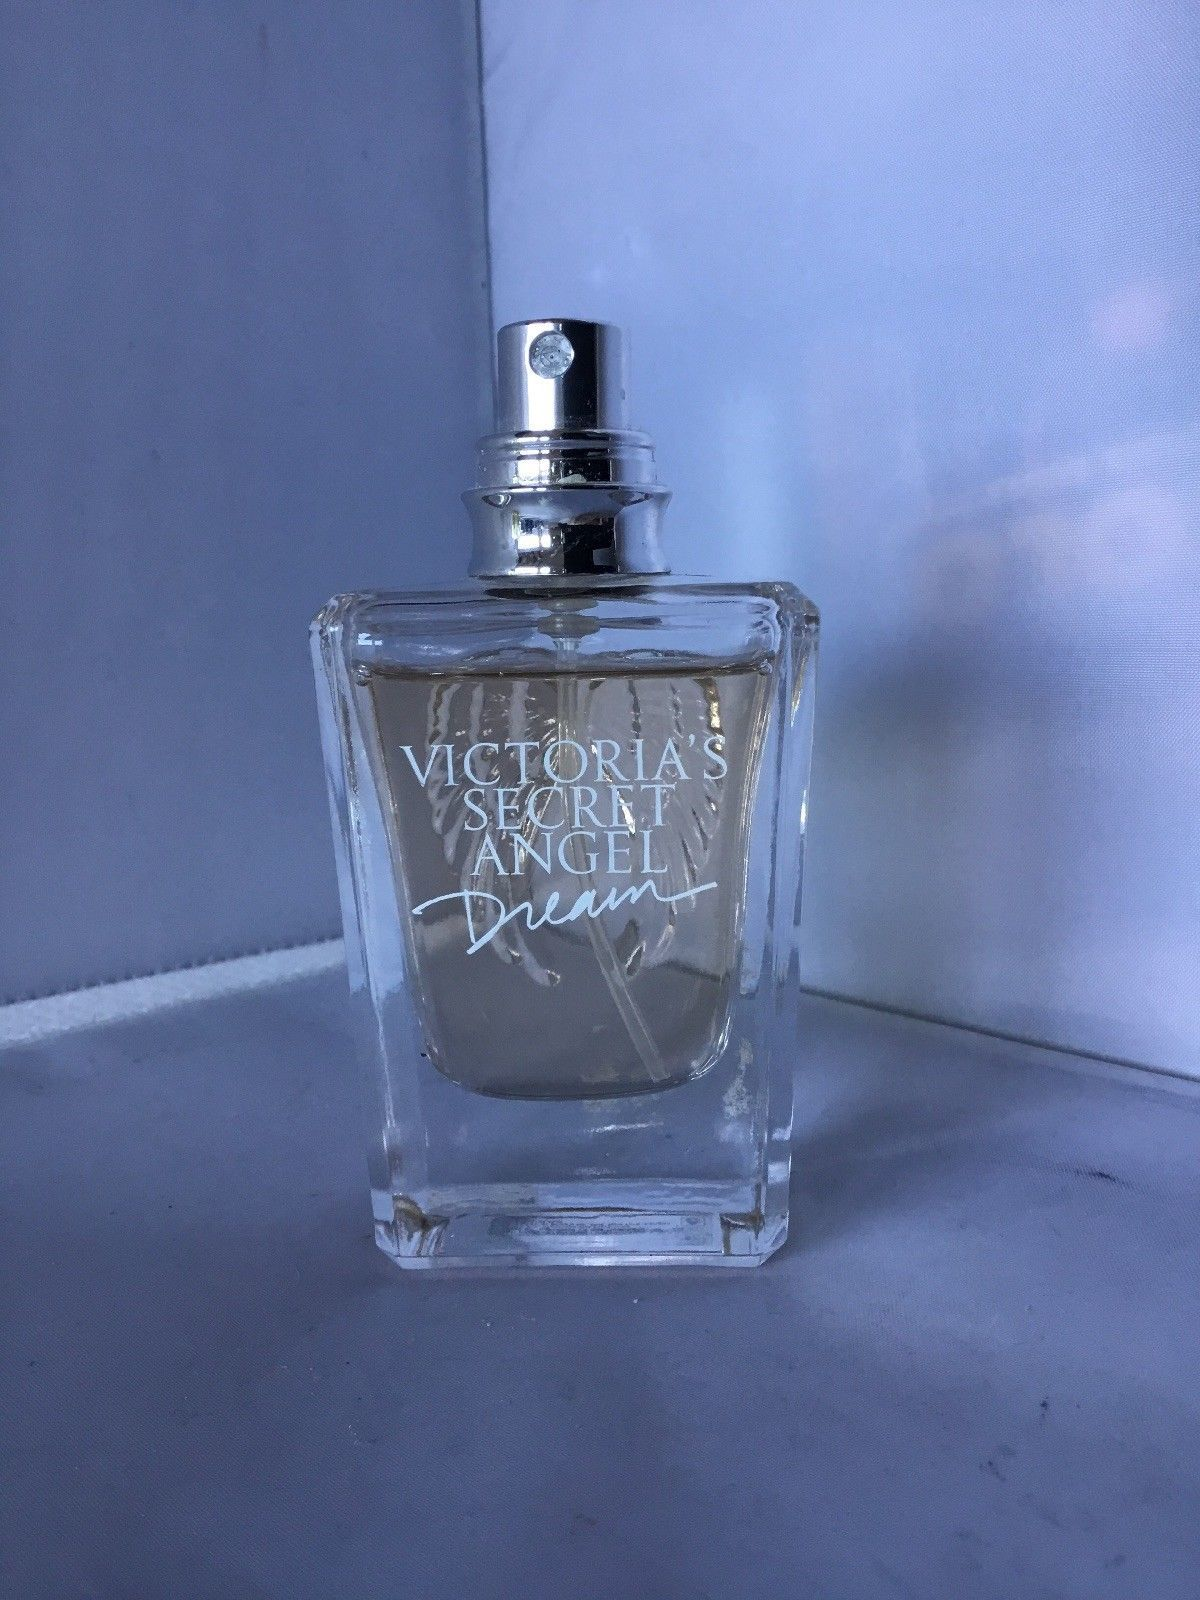 Victoria's Secret Angel DREAM 1oz EAU DE PARFUM Perfume WOMEN Full L01